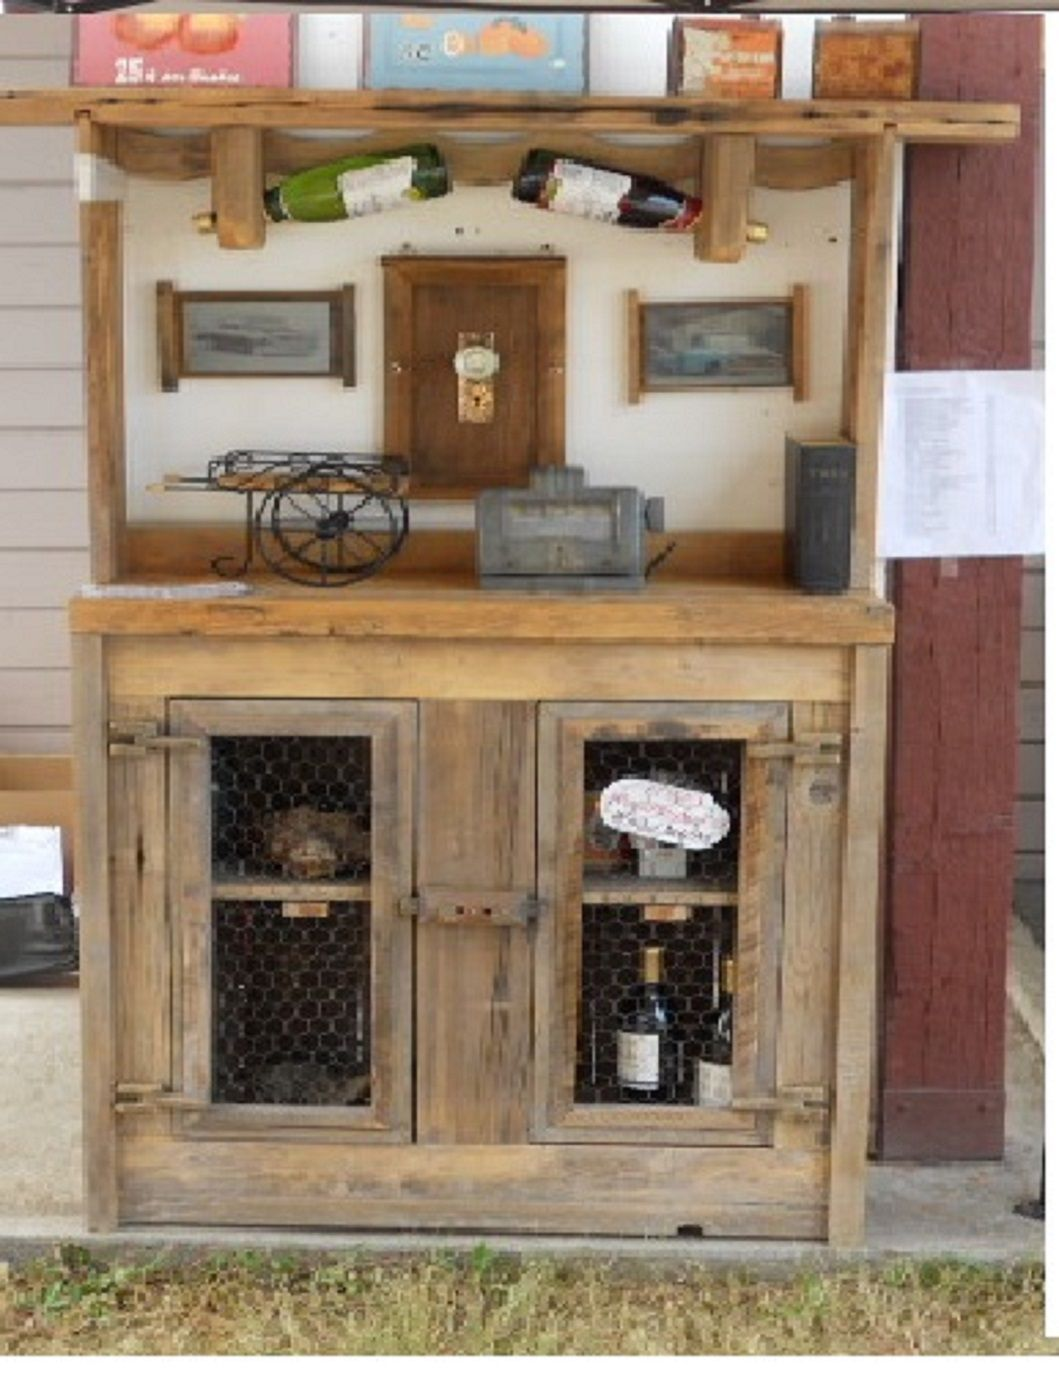 wine hutch with wooden hinges and latch. Chicken wire doors. Made from an old schoolhouse steps from 1931